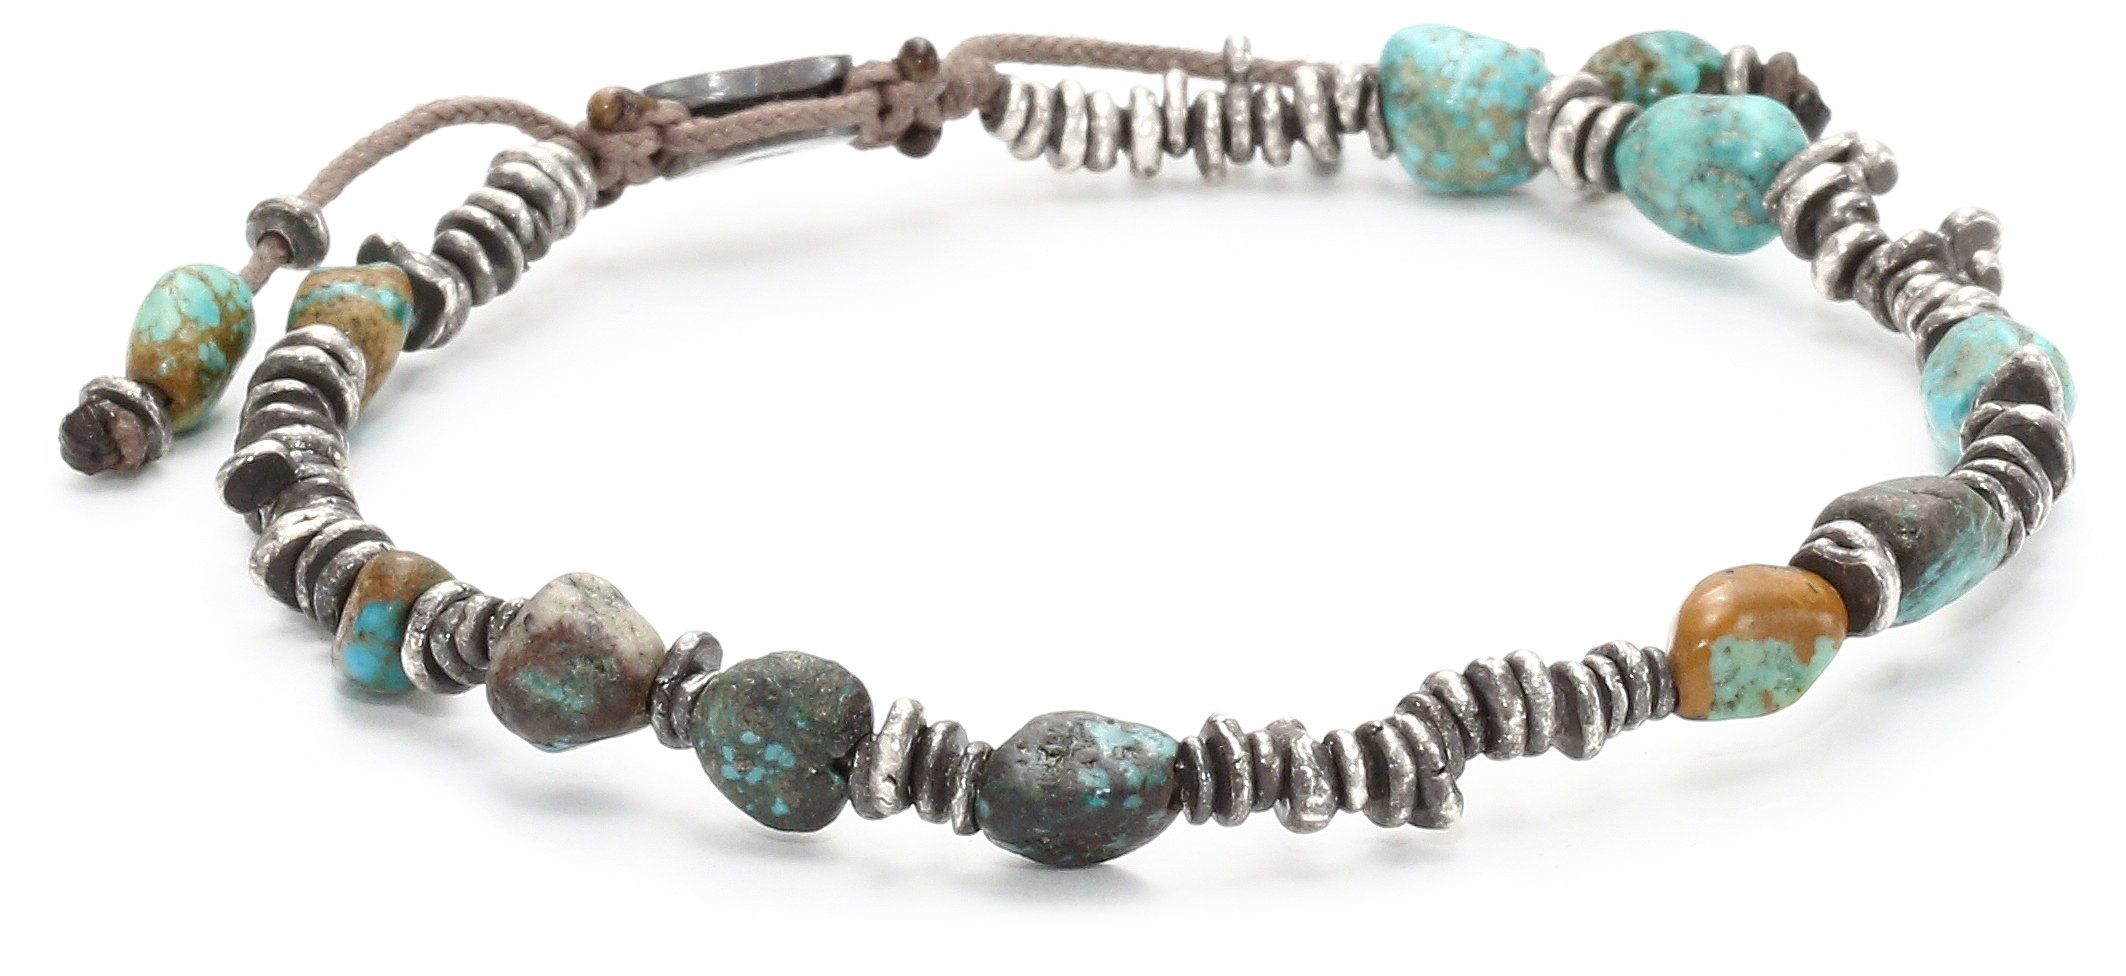 Mcohen handmade designs mixed sterling silver nuggets and turquoise